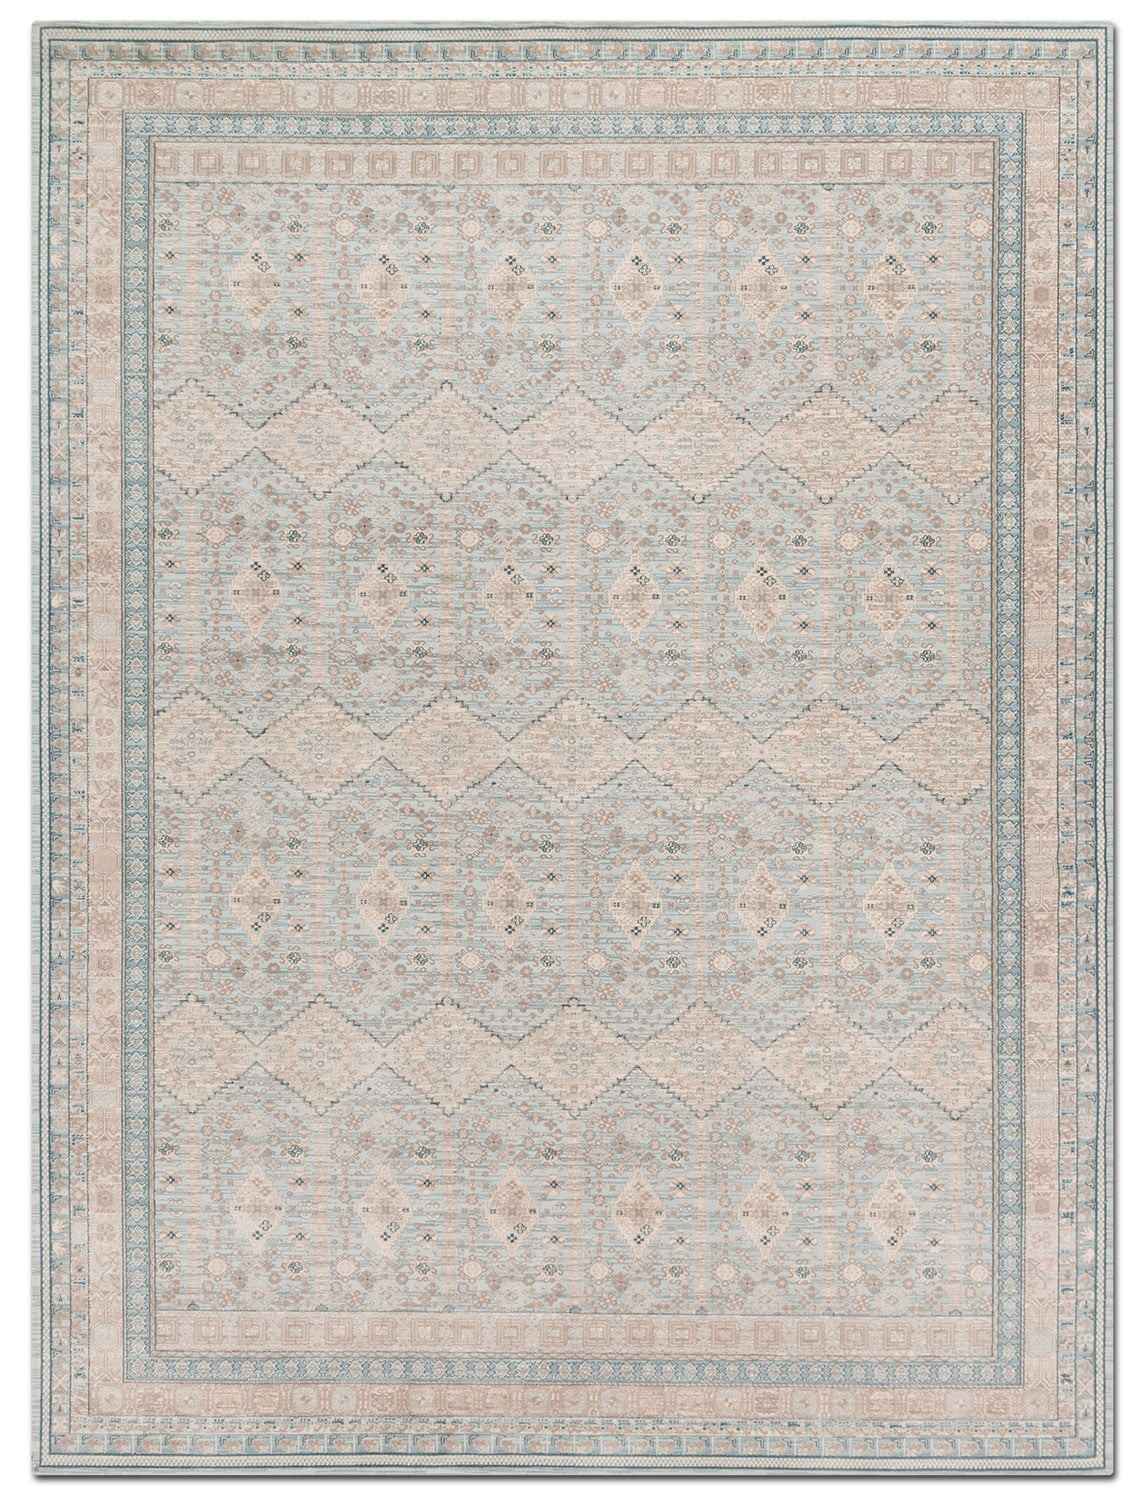 Rugs - Ella Rose 13' x 18' Rug - Mist and Stone